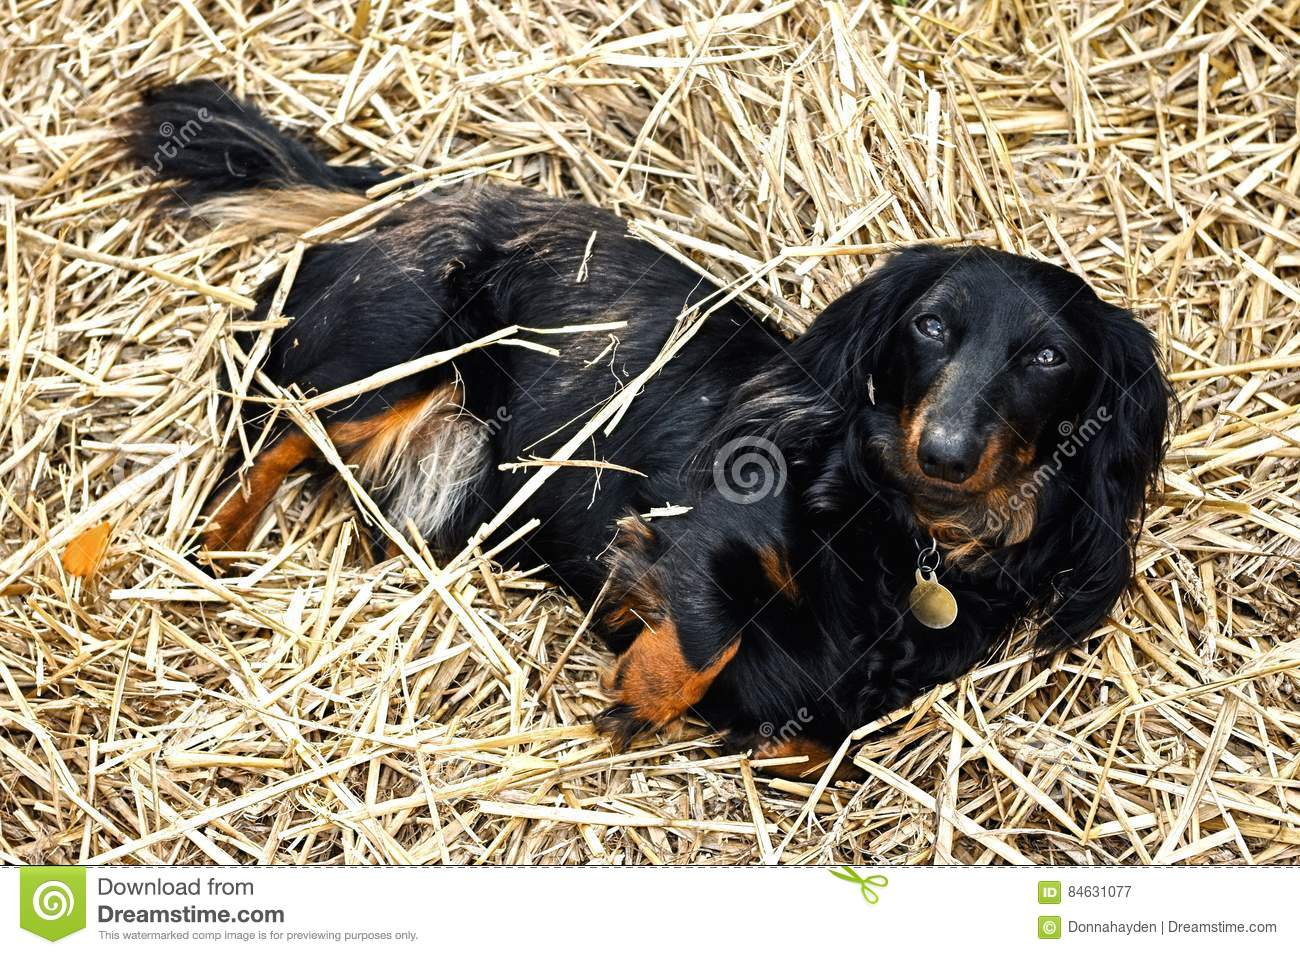 Zwarte en Tan Long-Haired Dachshund Laying in een Bed van Stro in de tuin